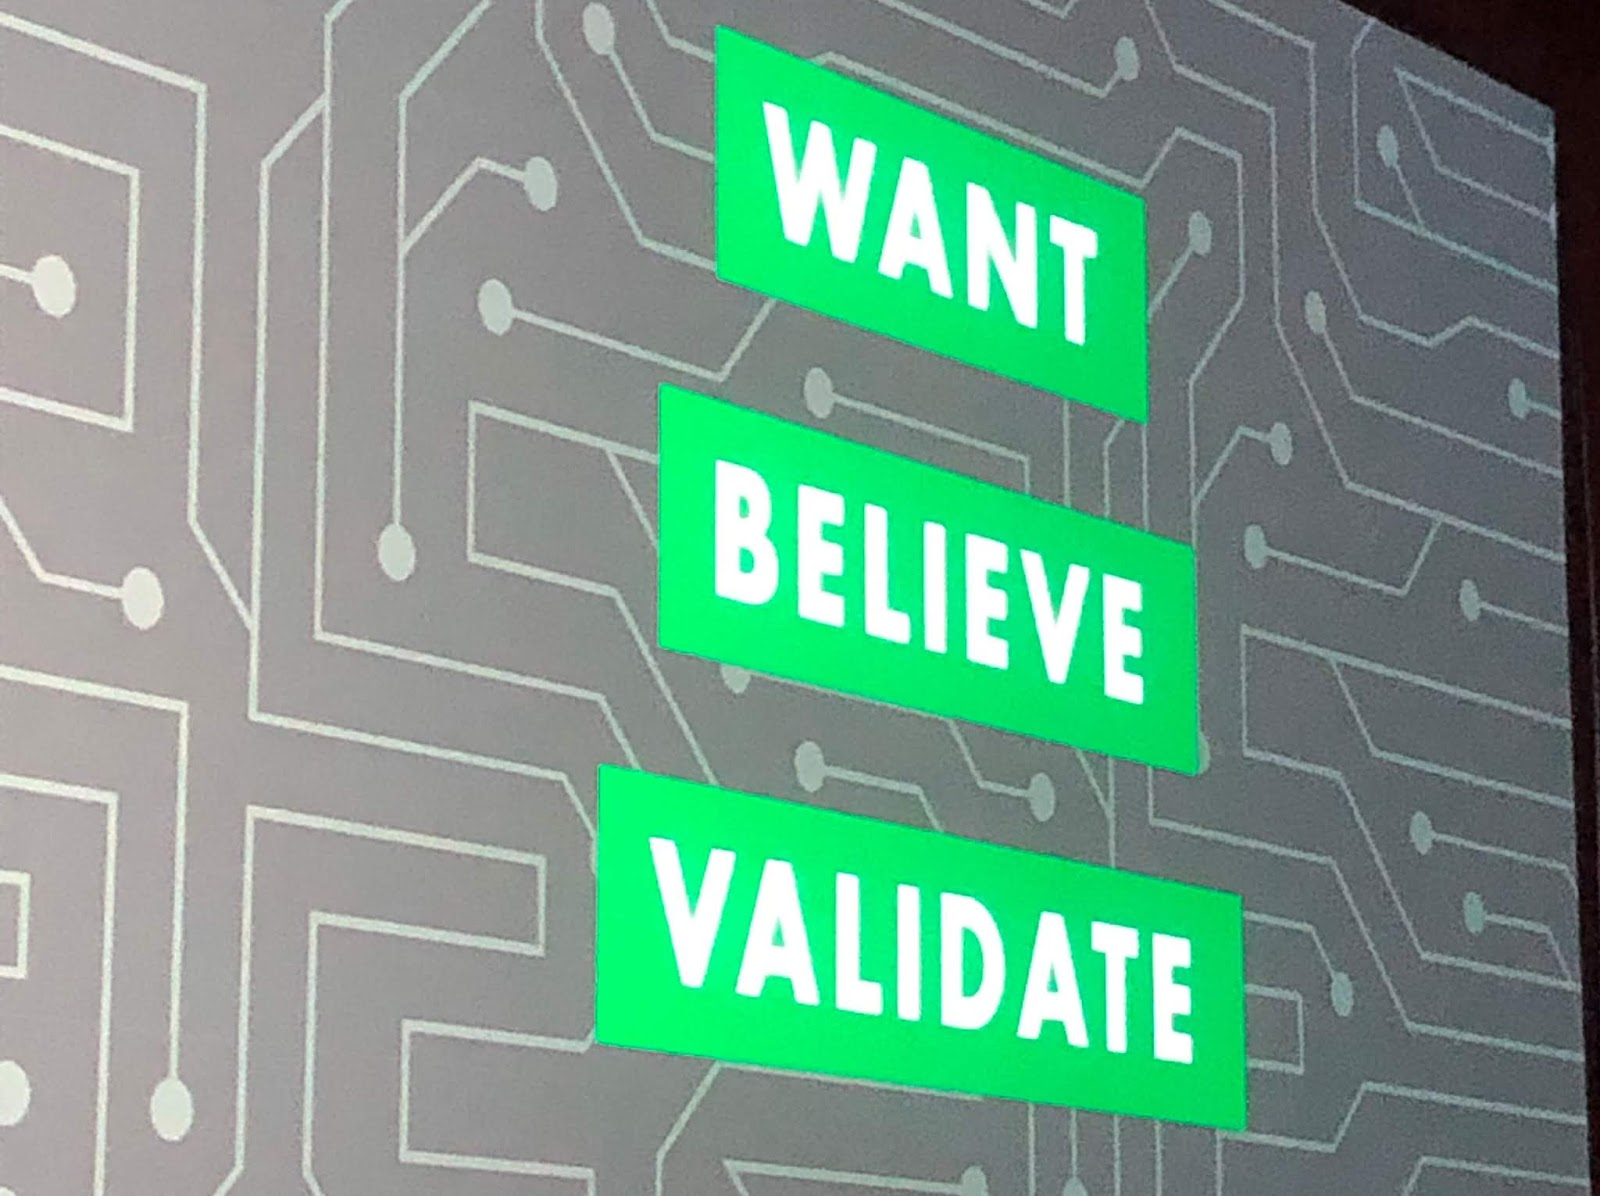 Tamsen Webster's Slide at Content Marketing World 2019 - Want, Believe, Validate